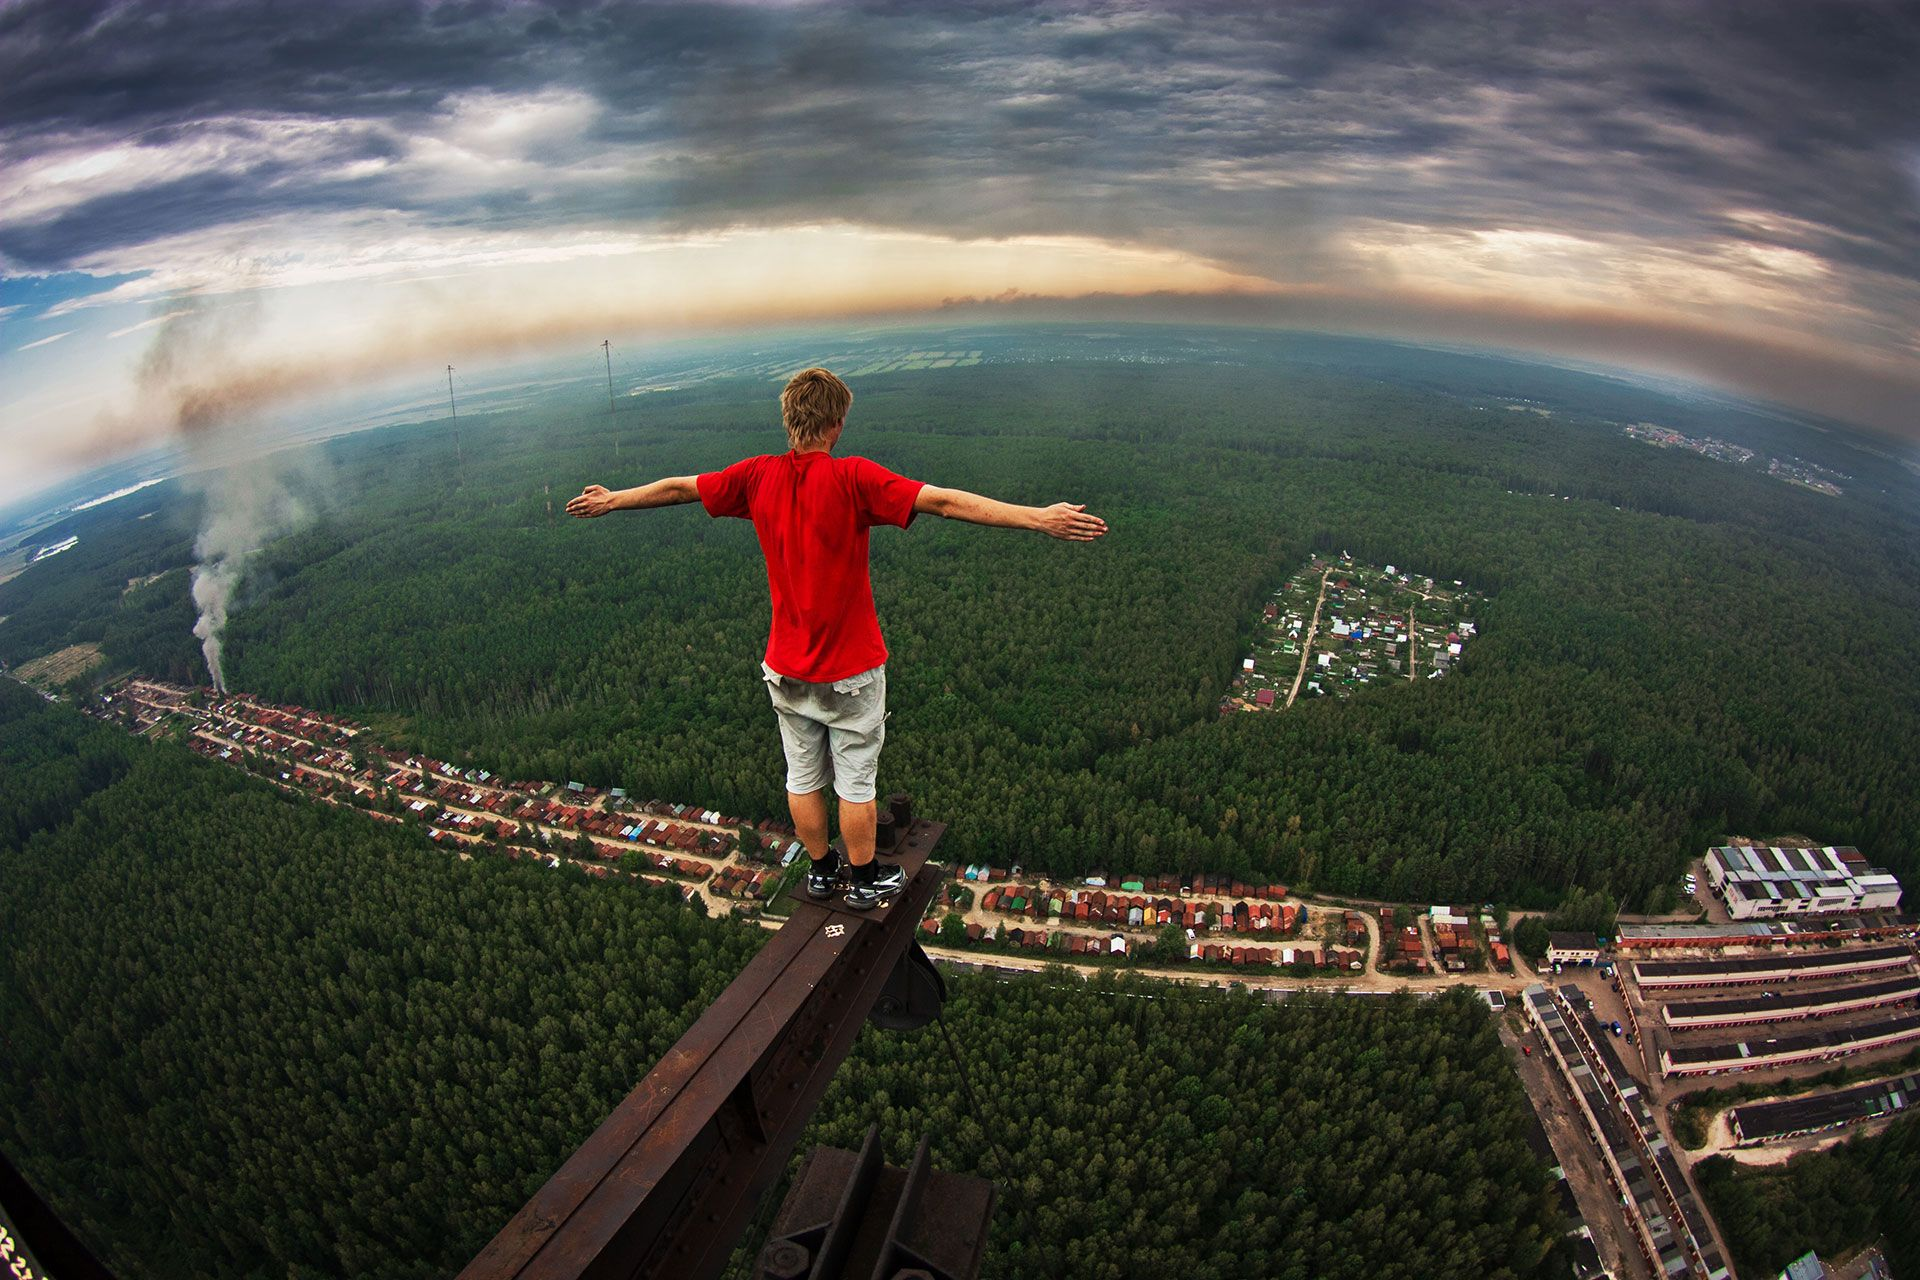 Roof Of The World Russian Daredevils Have Scaled Global Heights What Will They Conquer Next Pictures Cool Photos Photo